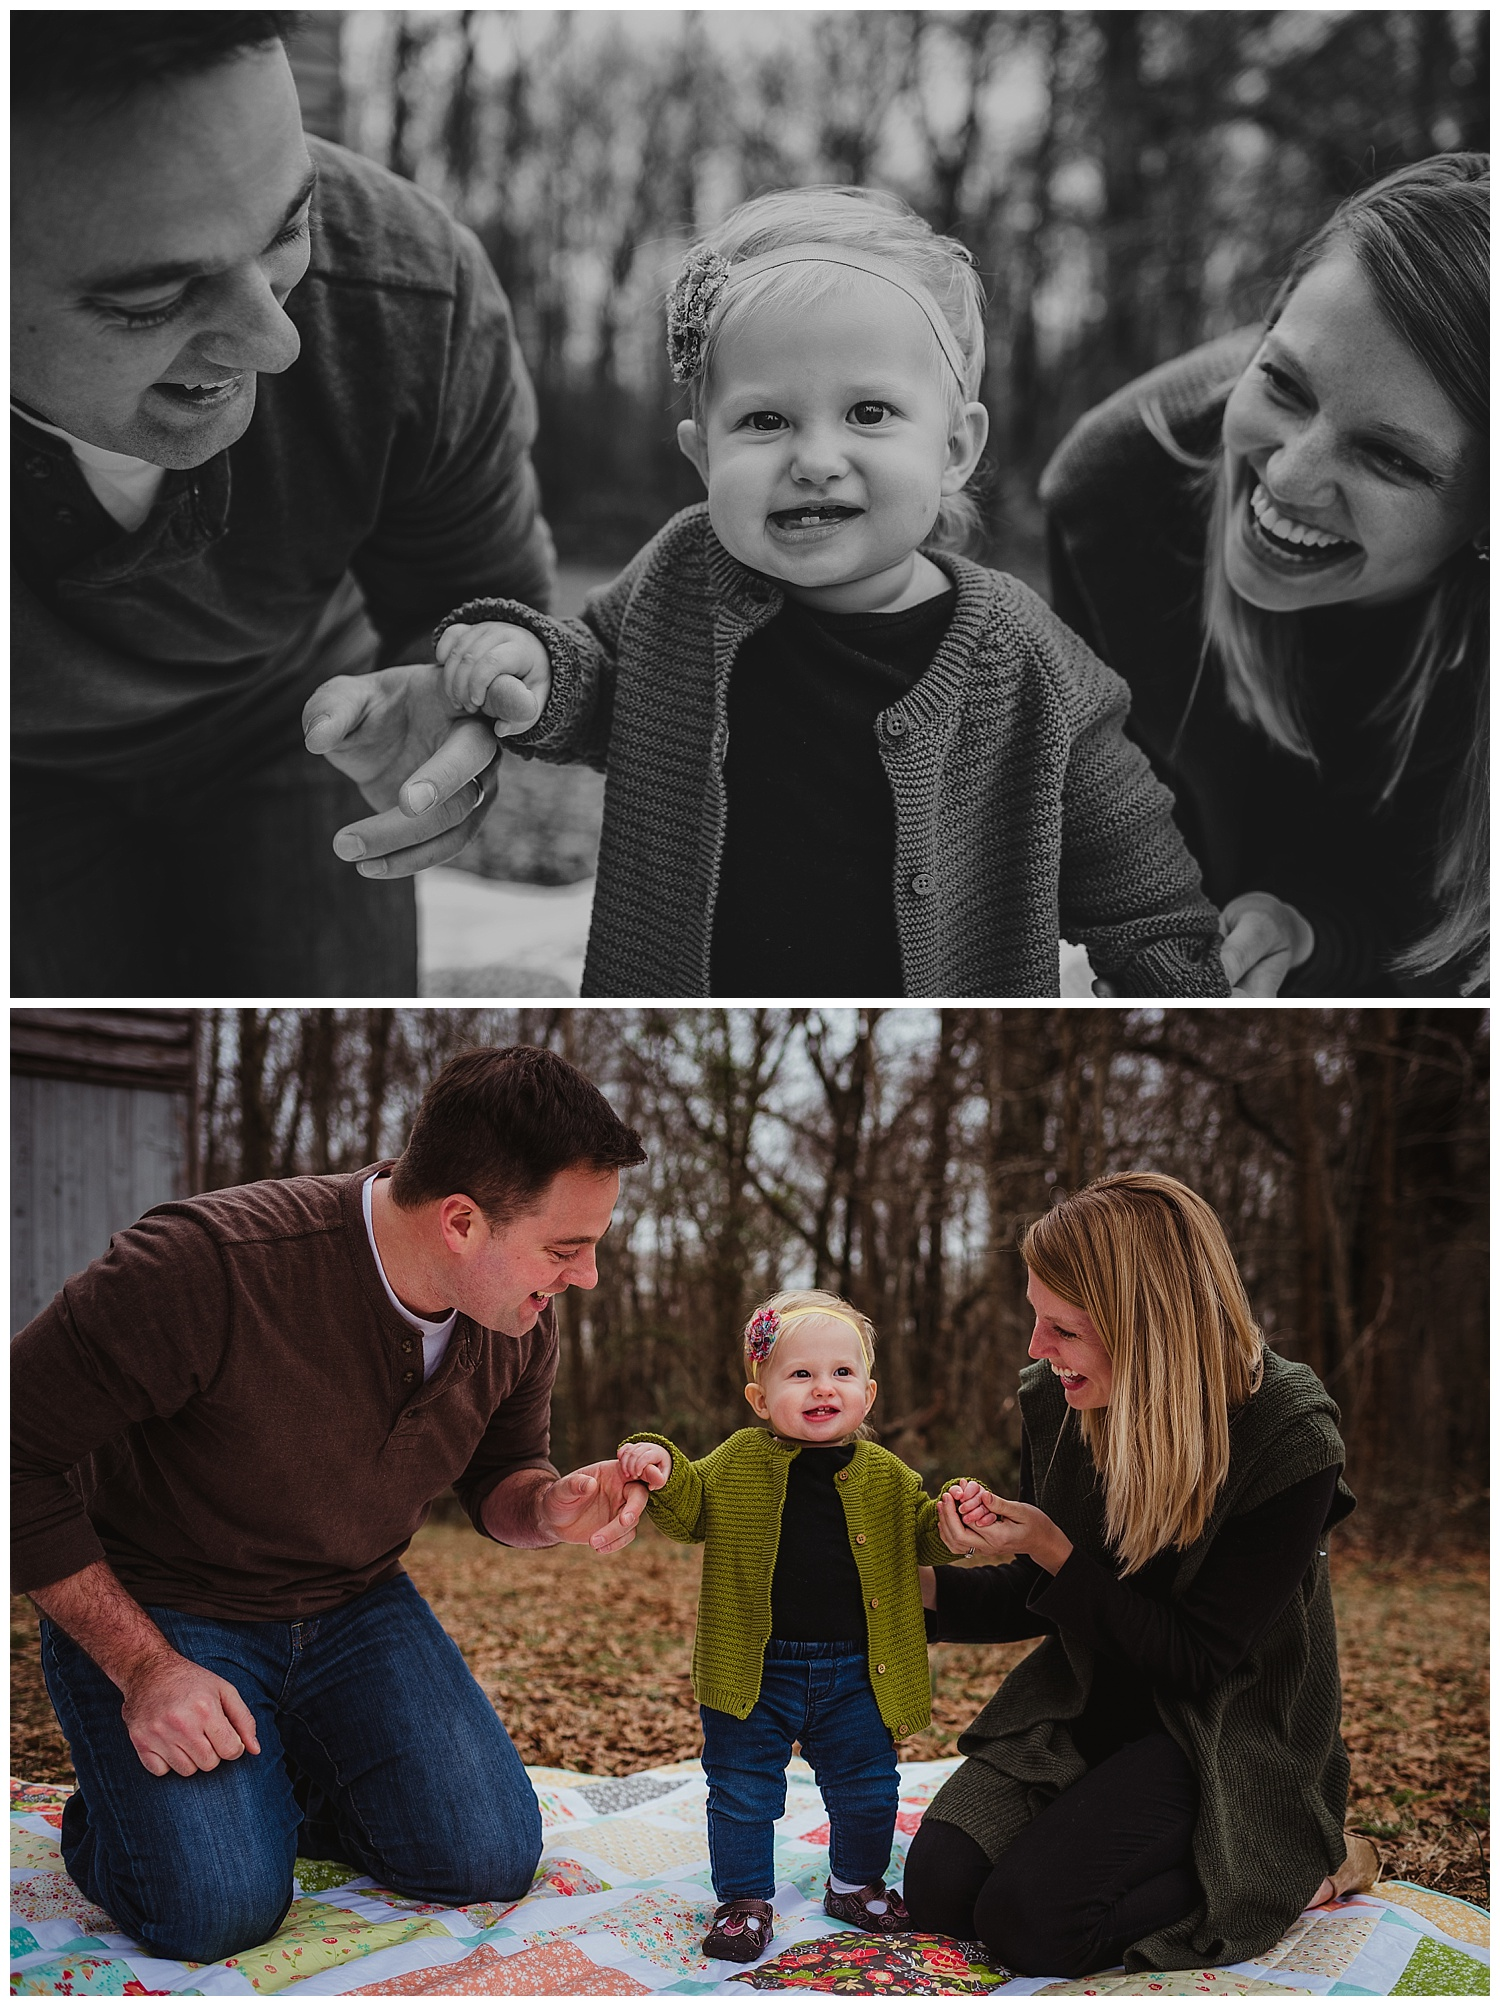 The parents smile at their daughter during their family photo shoot in Wake Forest, North Carolina.